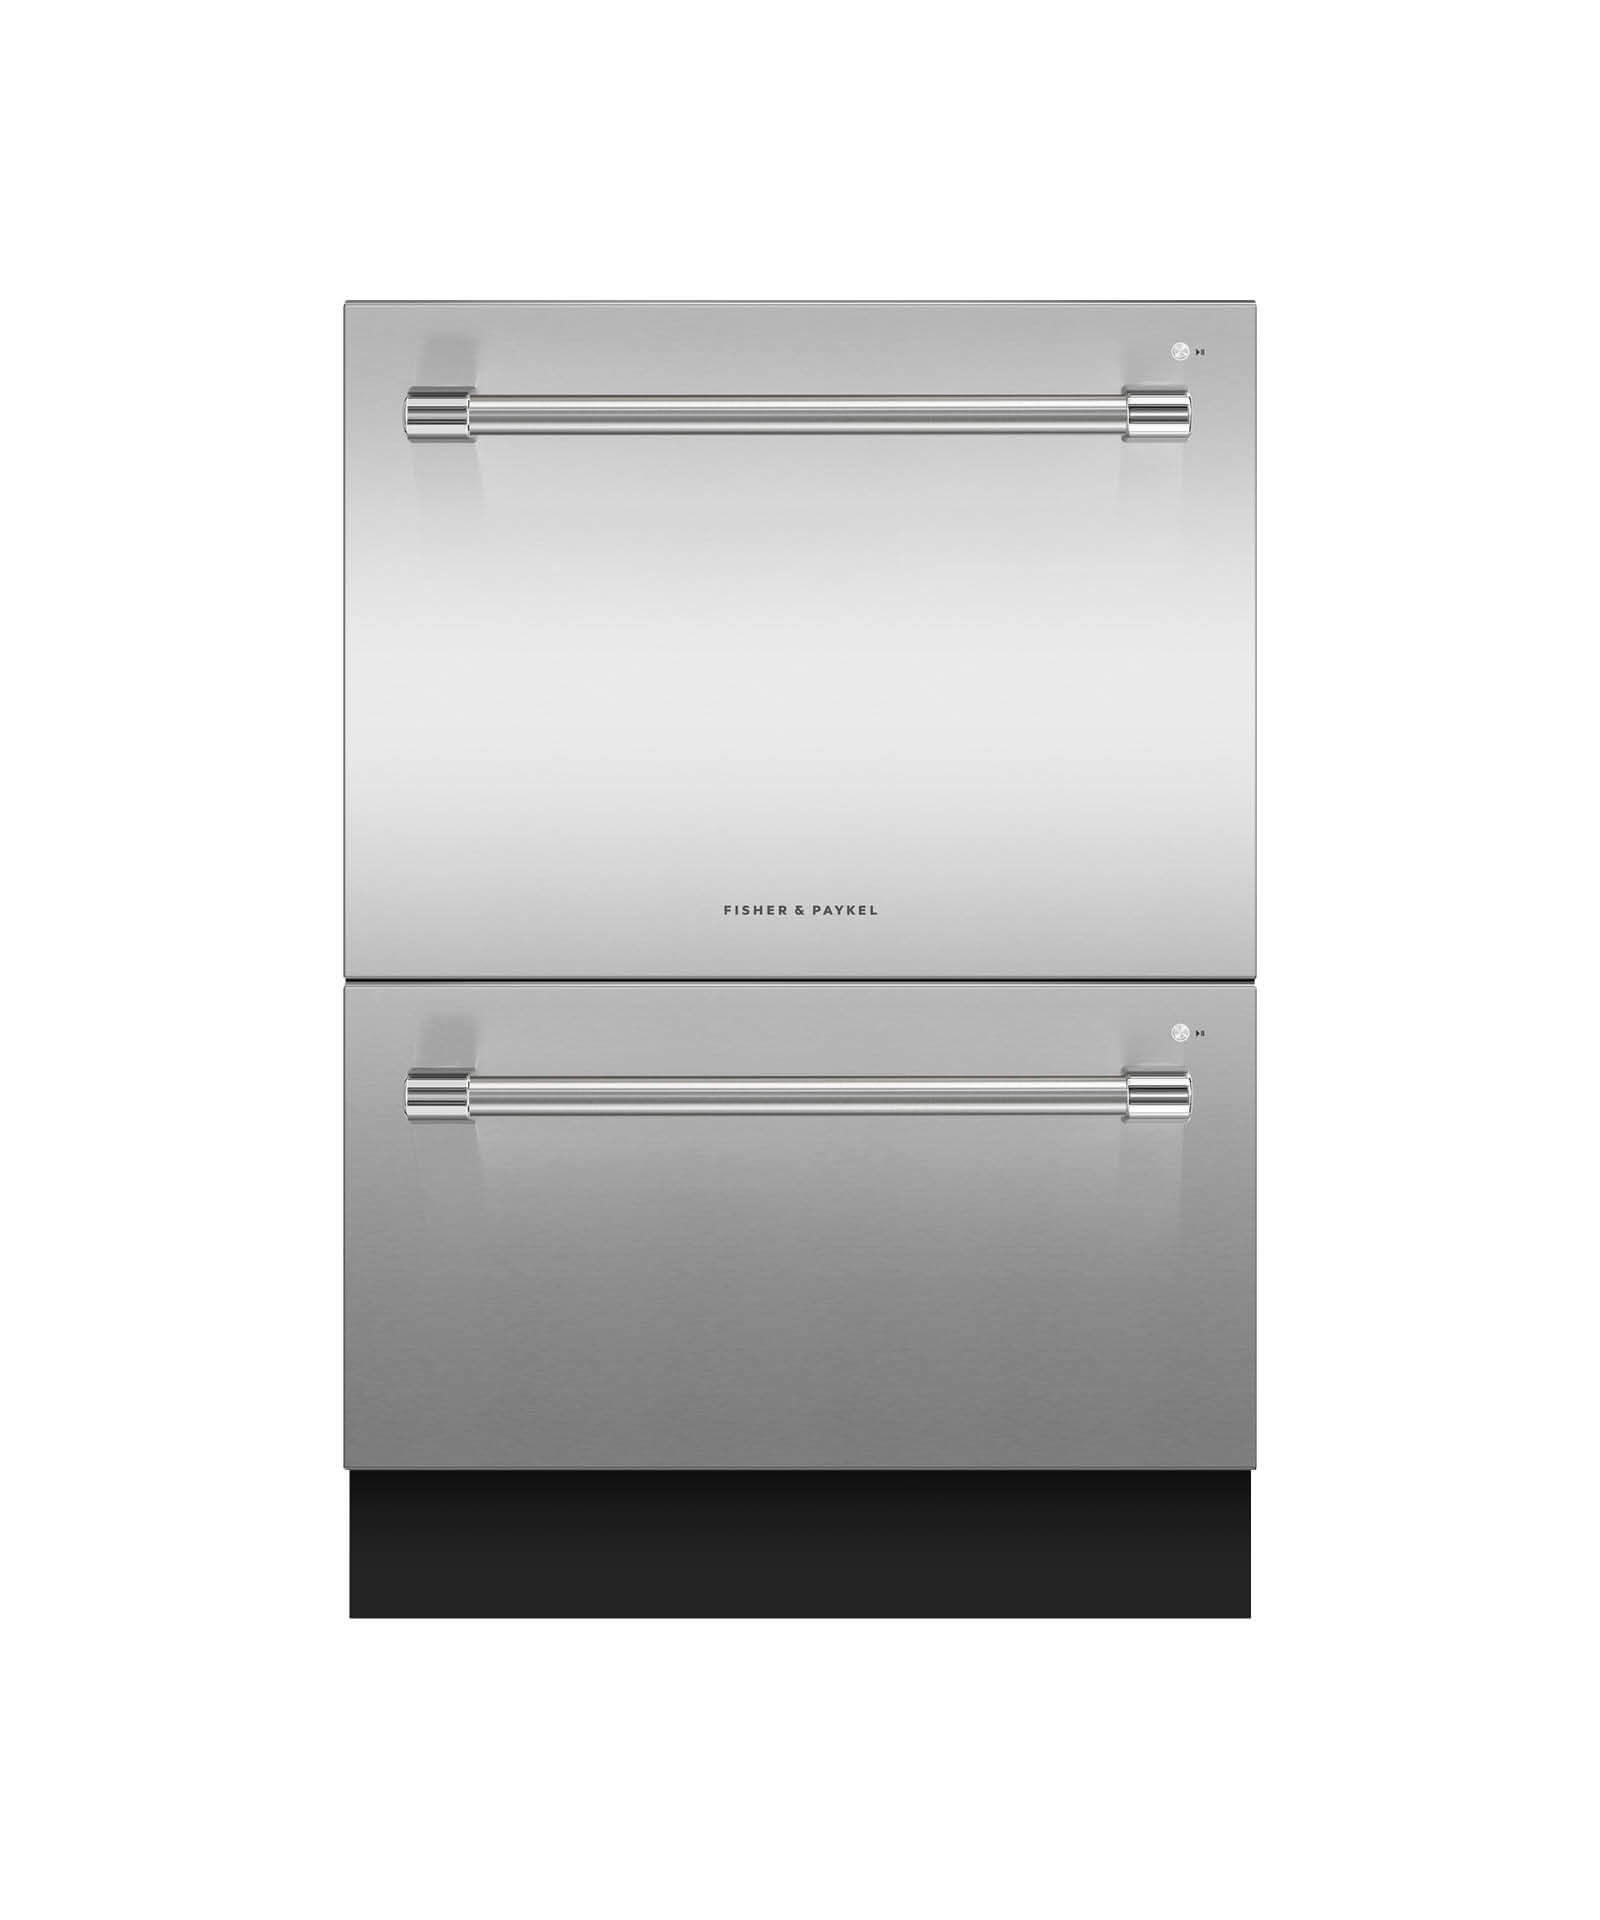 "Model: DD24DV2T9_N | Fisher and Paykel 24"" Double DishDrawer™ Dishwasher, 14 Place Settings, Sanitize (Tall)"